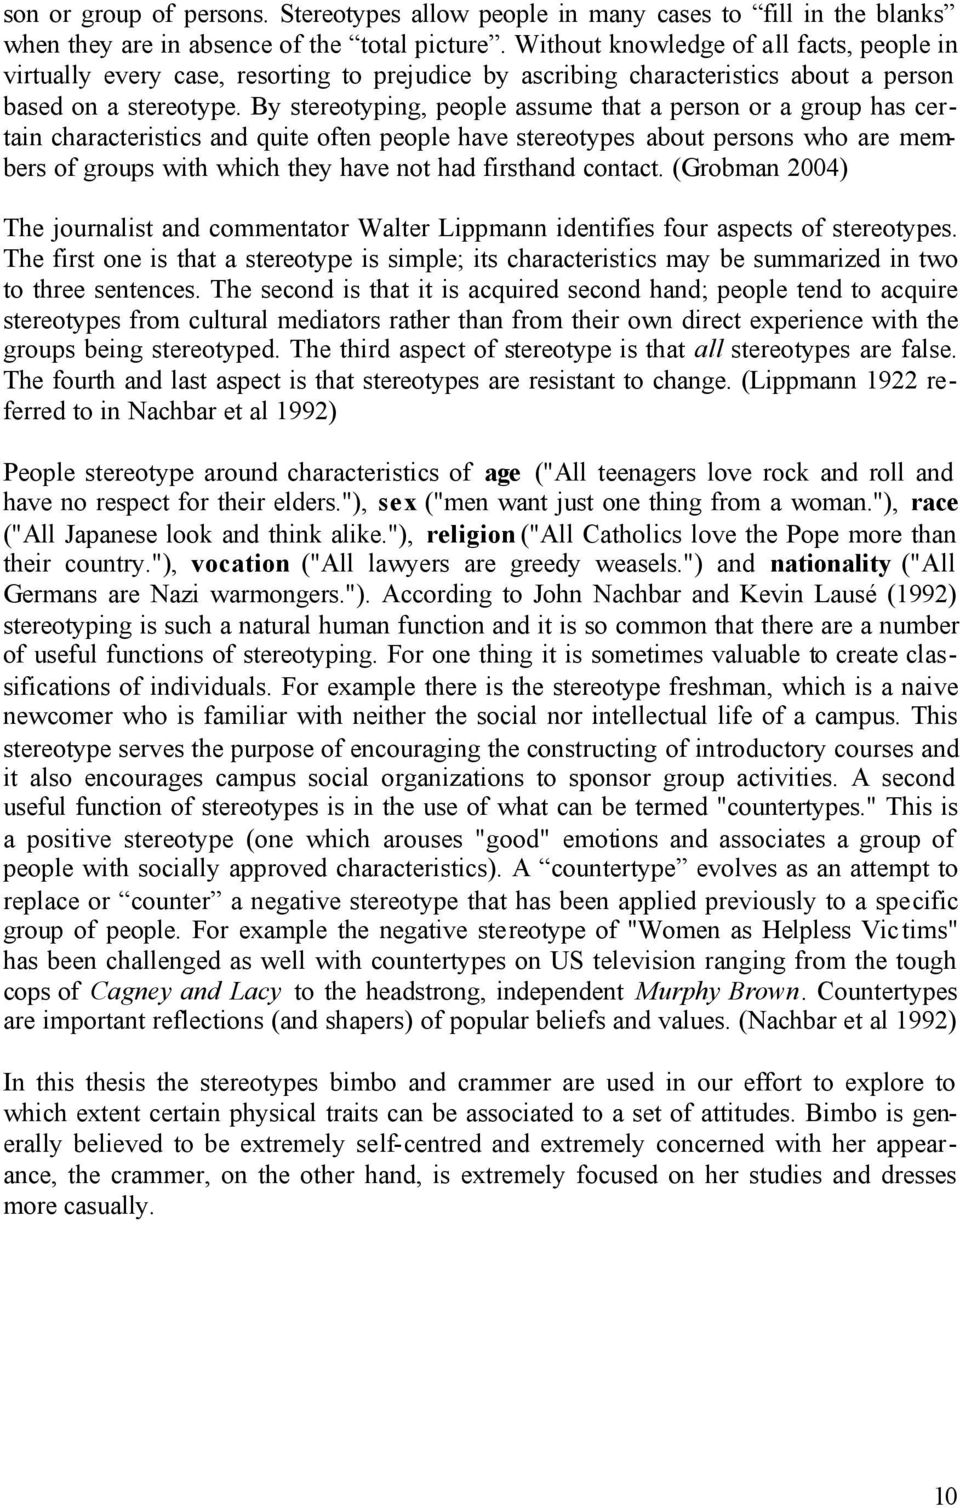 By stereotyping, people assume that a person or a group has certain characteristics and quite often people have stereotypes about persons who are members of groups with which they have not had